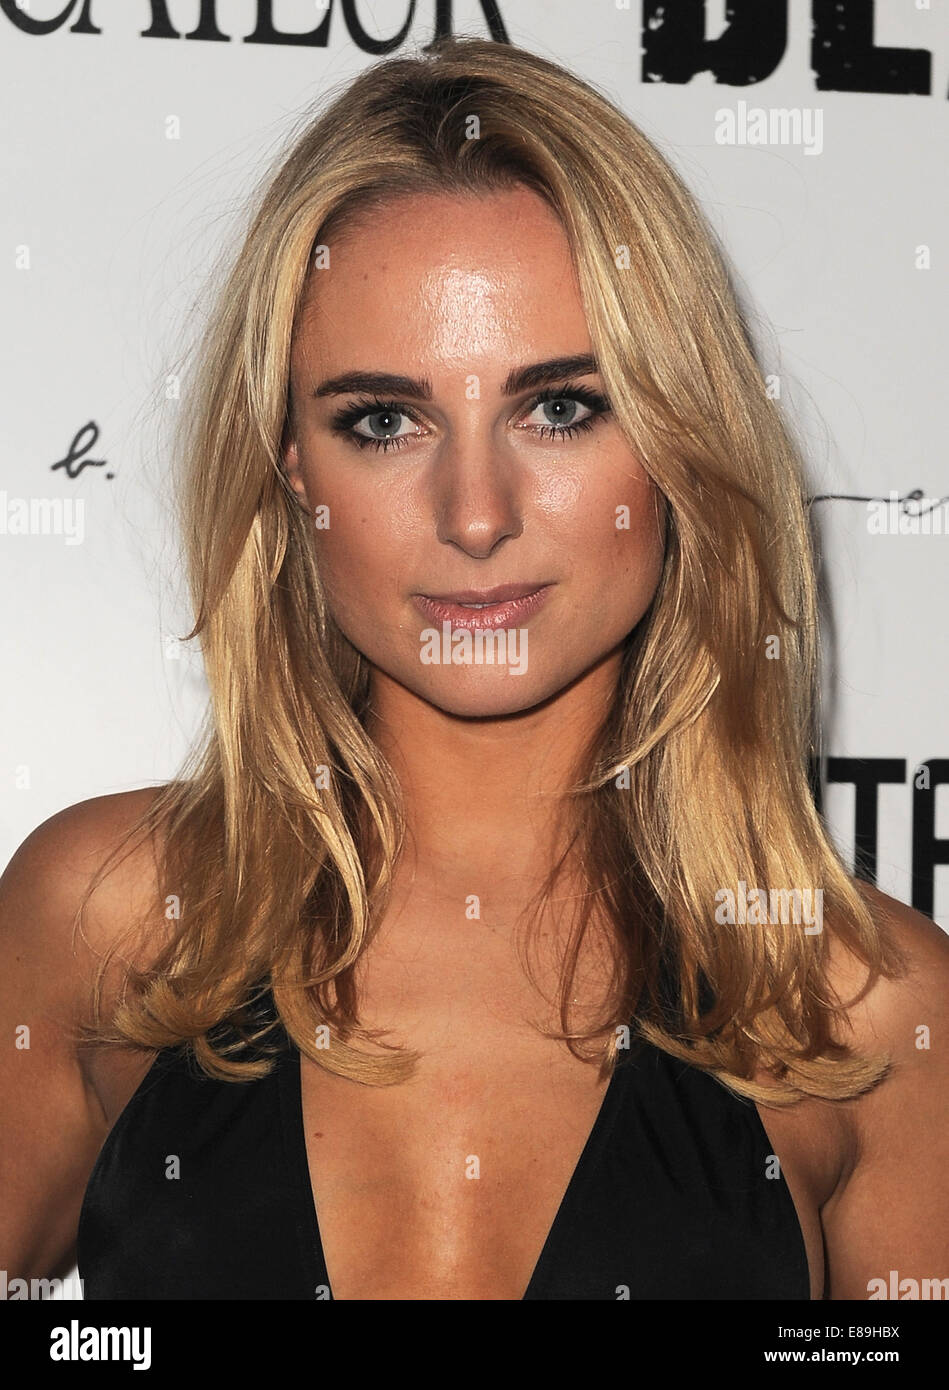 London, UK. 2nd Oct, 2014. Kimberley Garner attends Tyler Shields: Provocateur - private view at Imitate Modern. - Stock Image